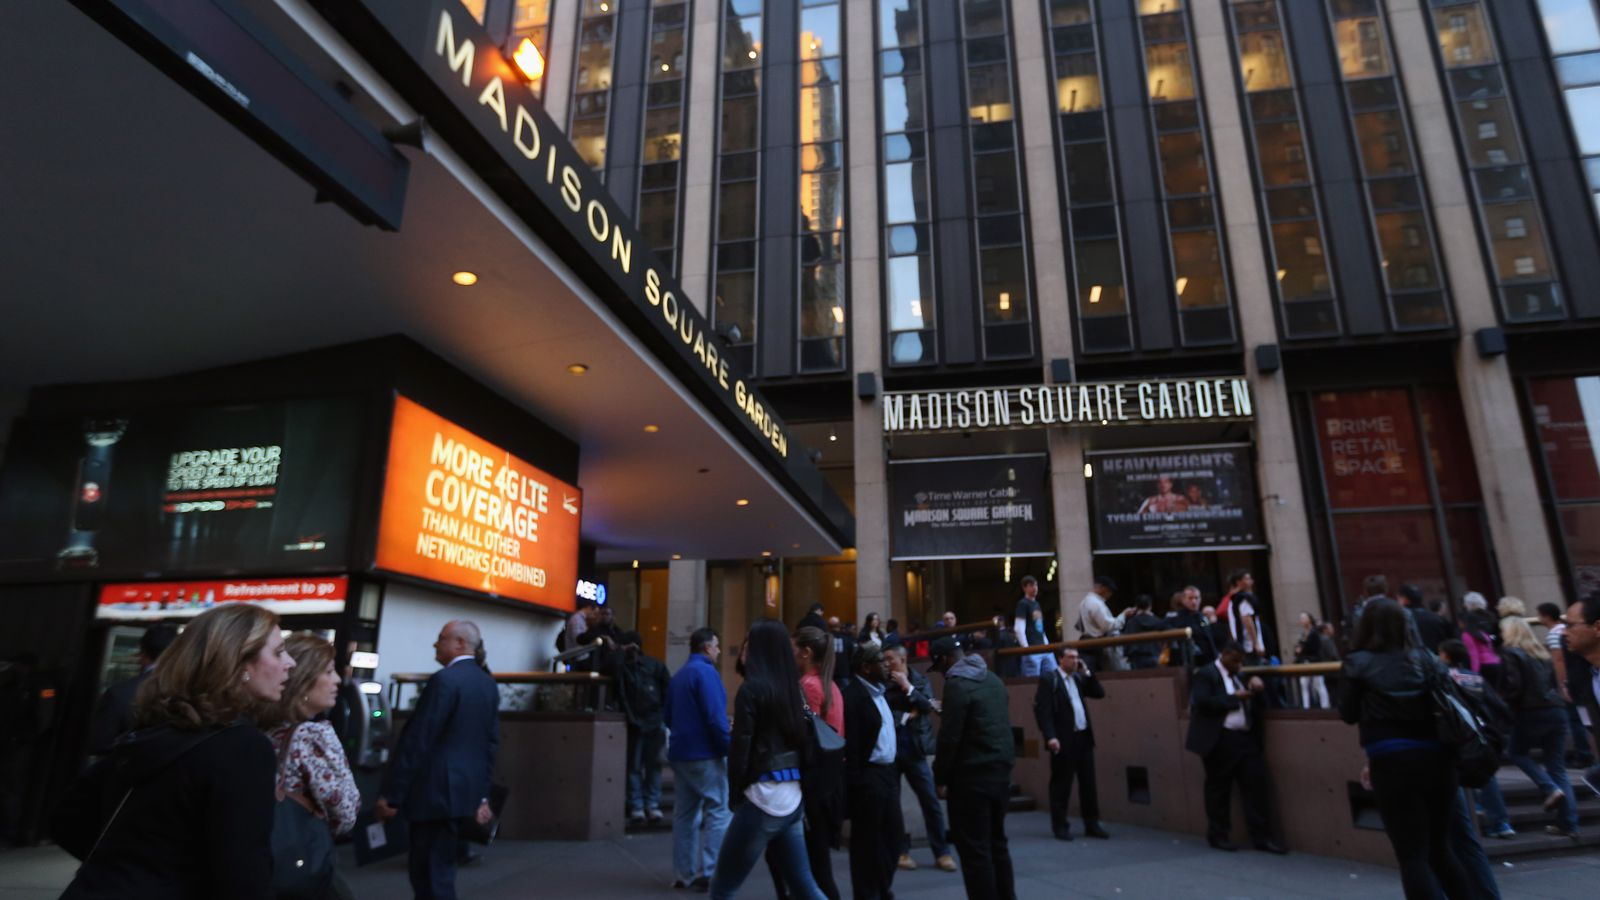 What to eat at madison square garden 2016 edition eater ny for Best restaurants near madison square garden